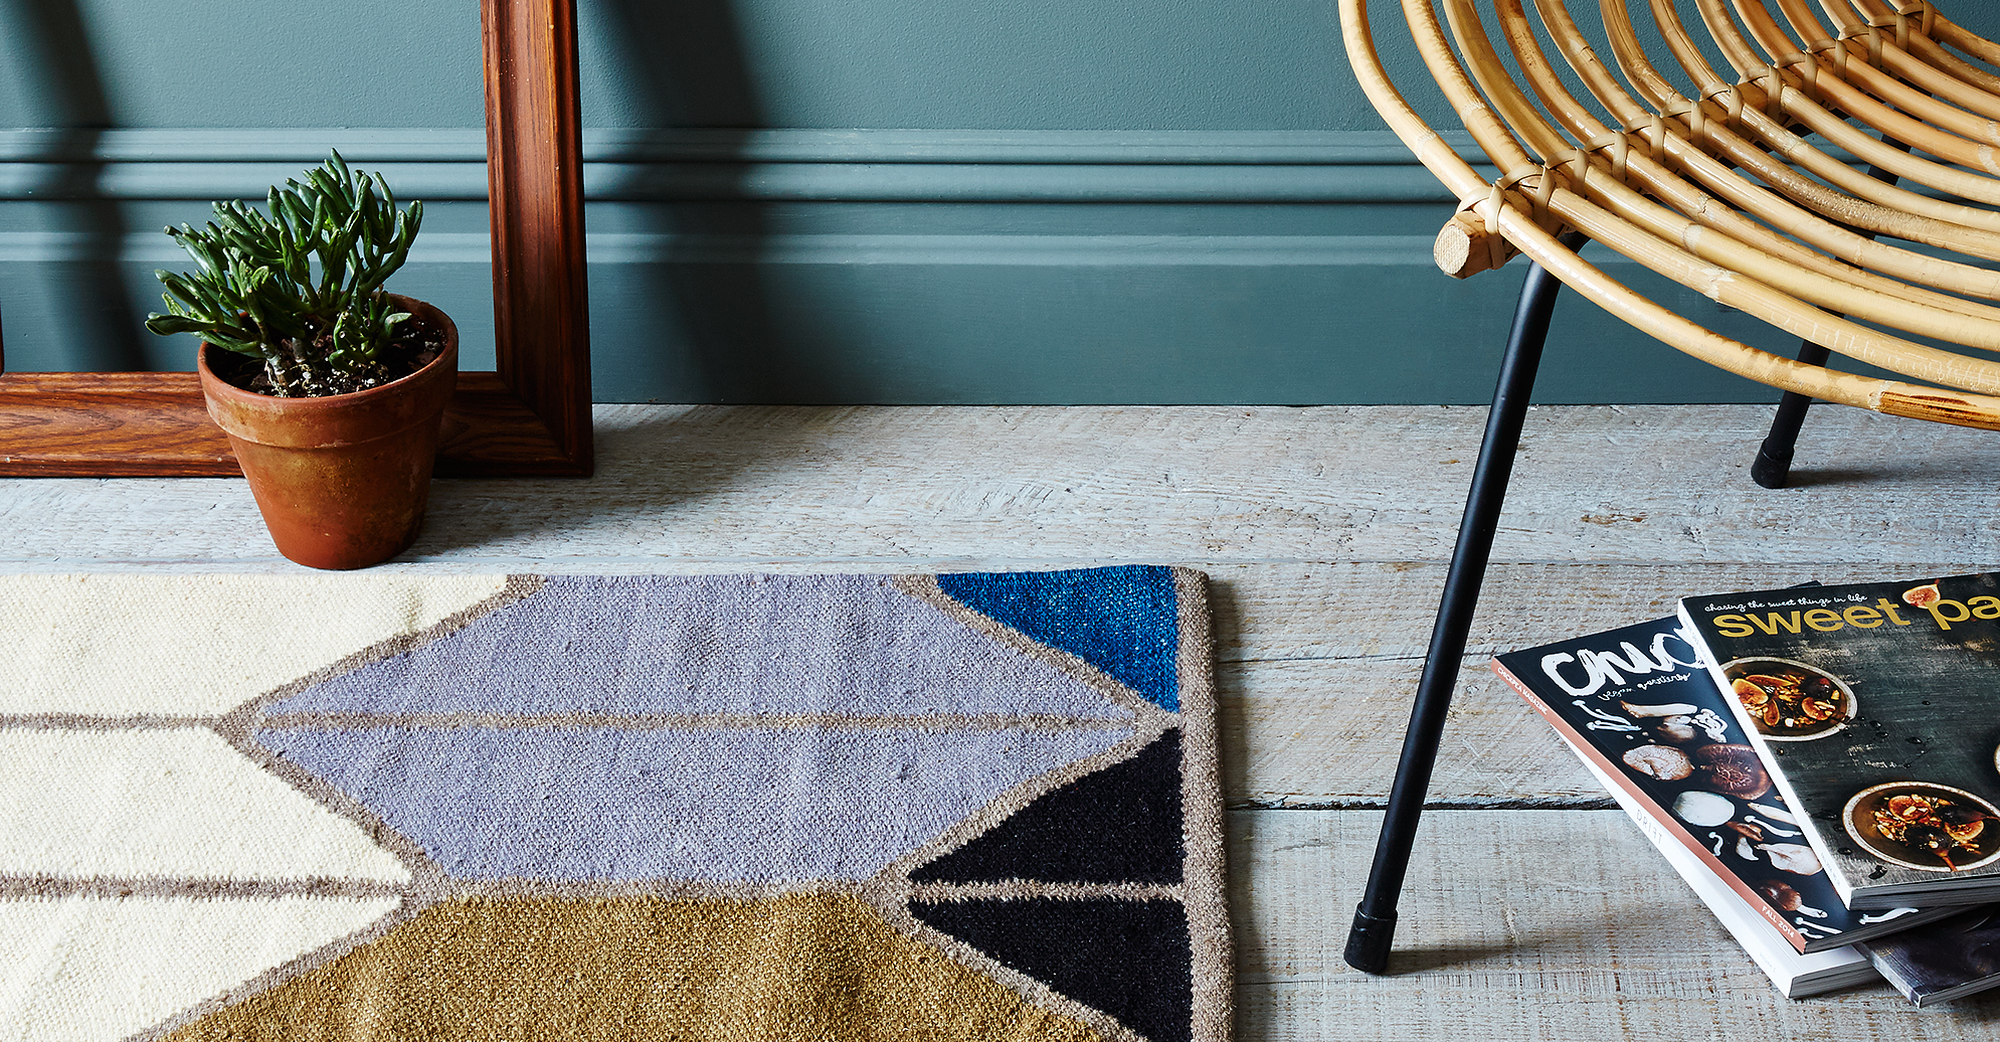 Wait, We Need to Clean Our Rugs *How* Often?